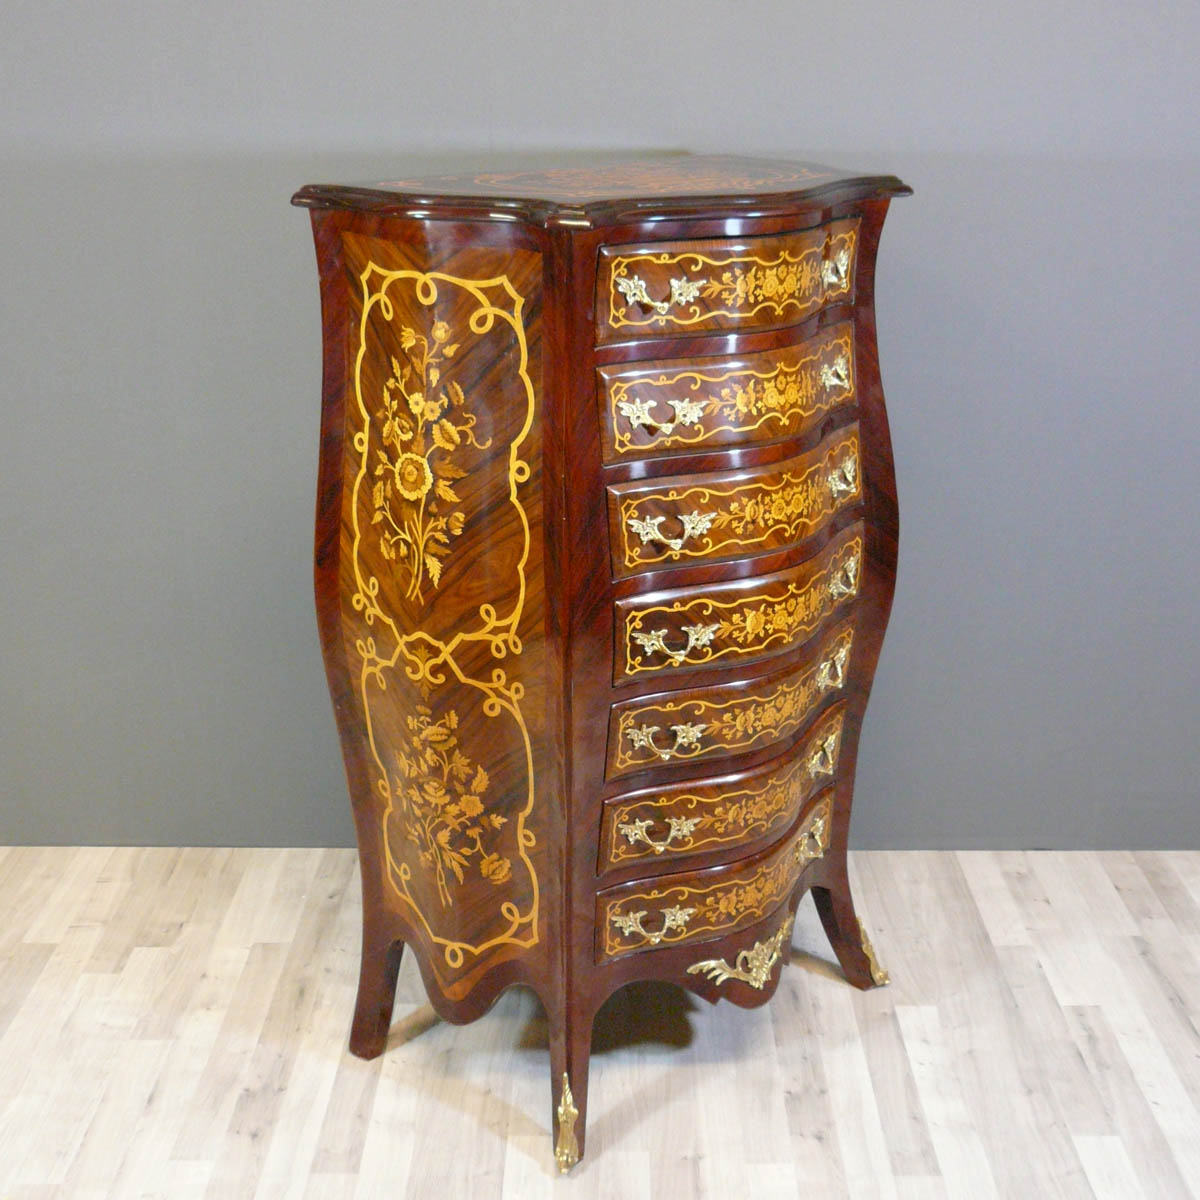 Semainier Louis XV Commode Louis XV Bureau Louis XV